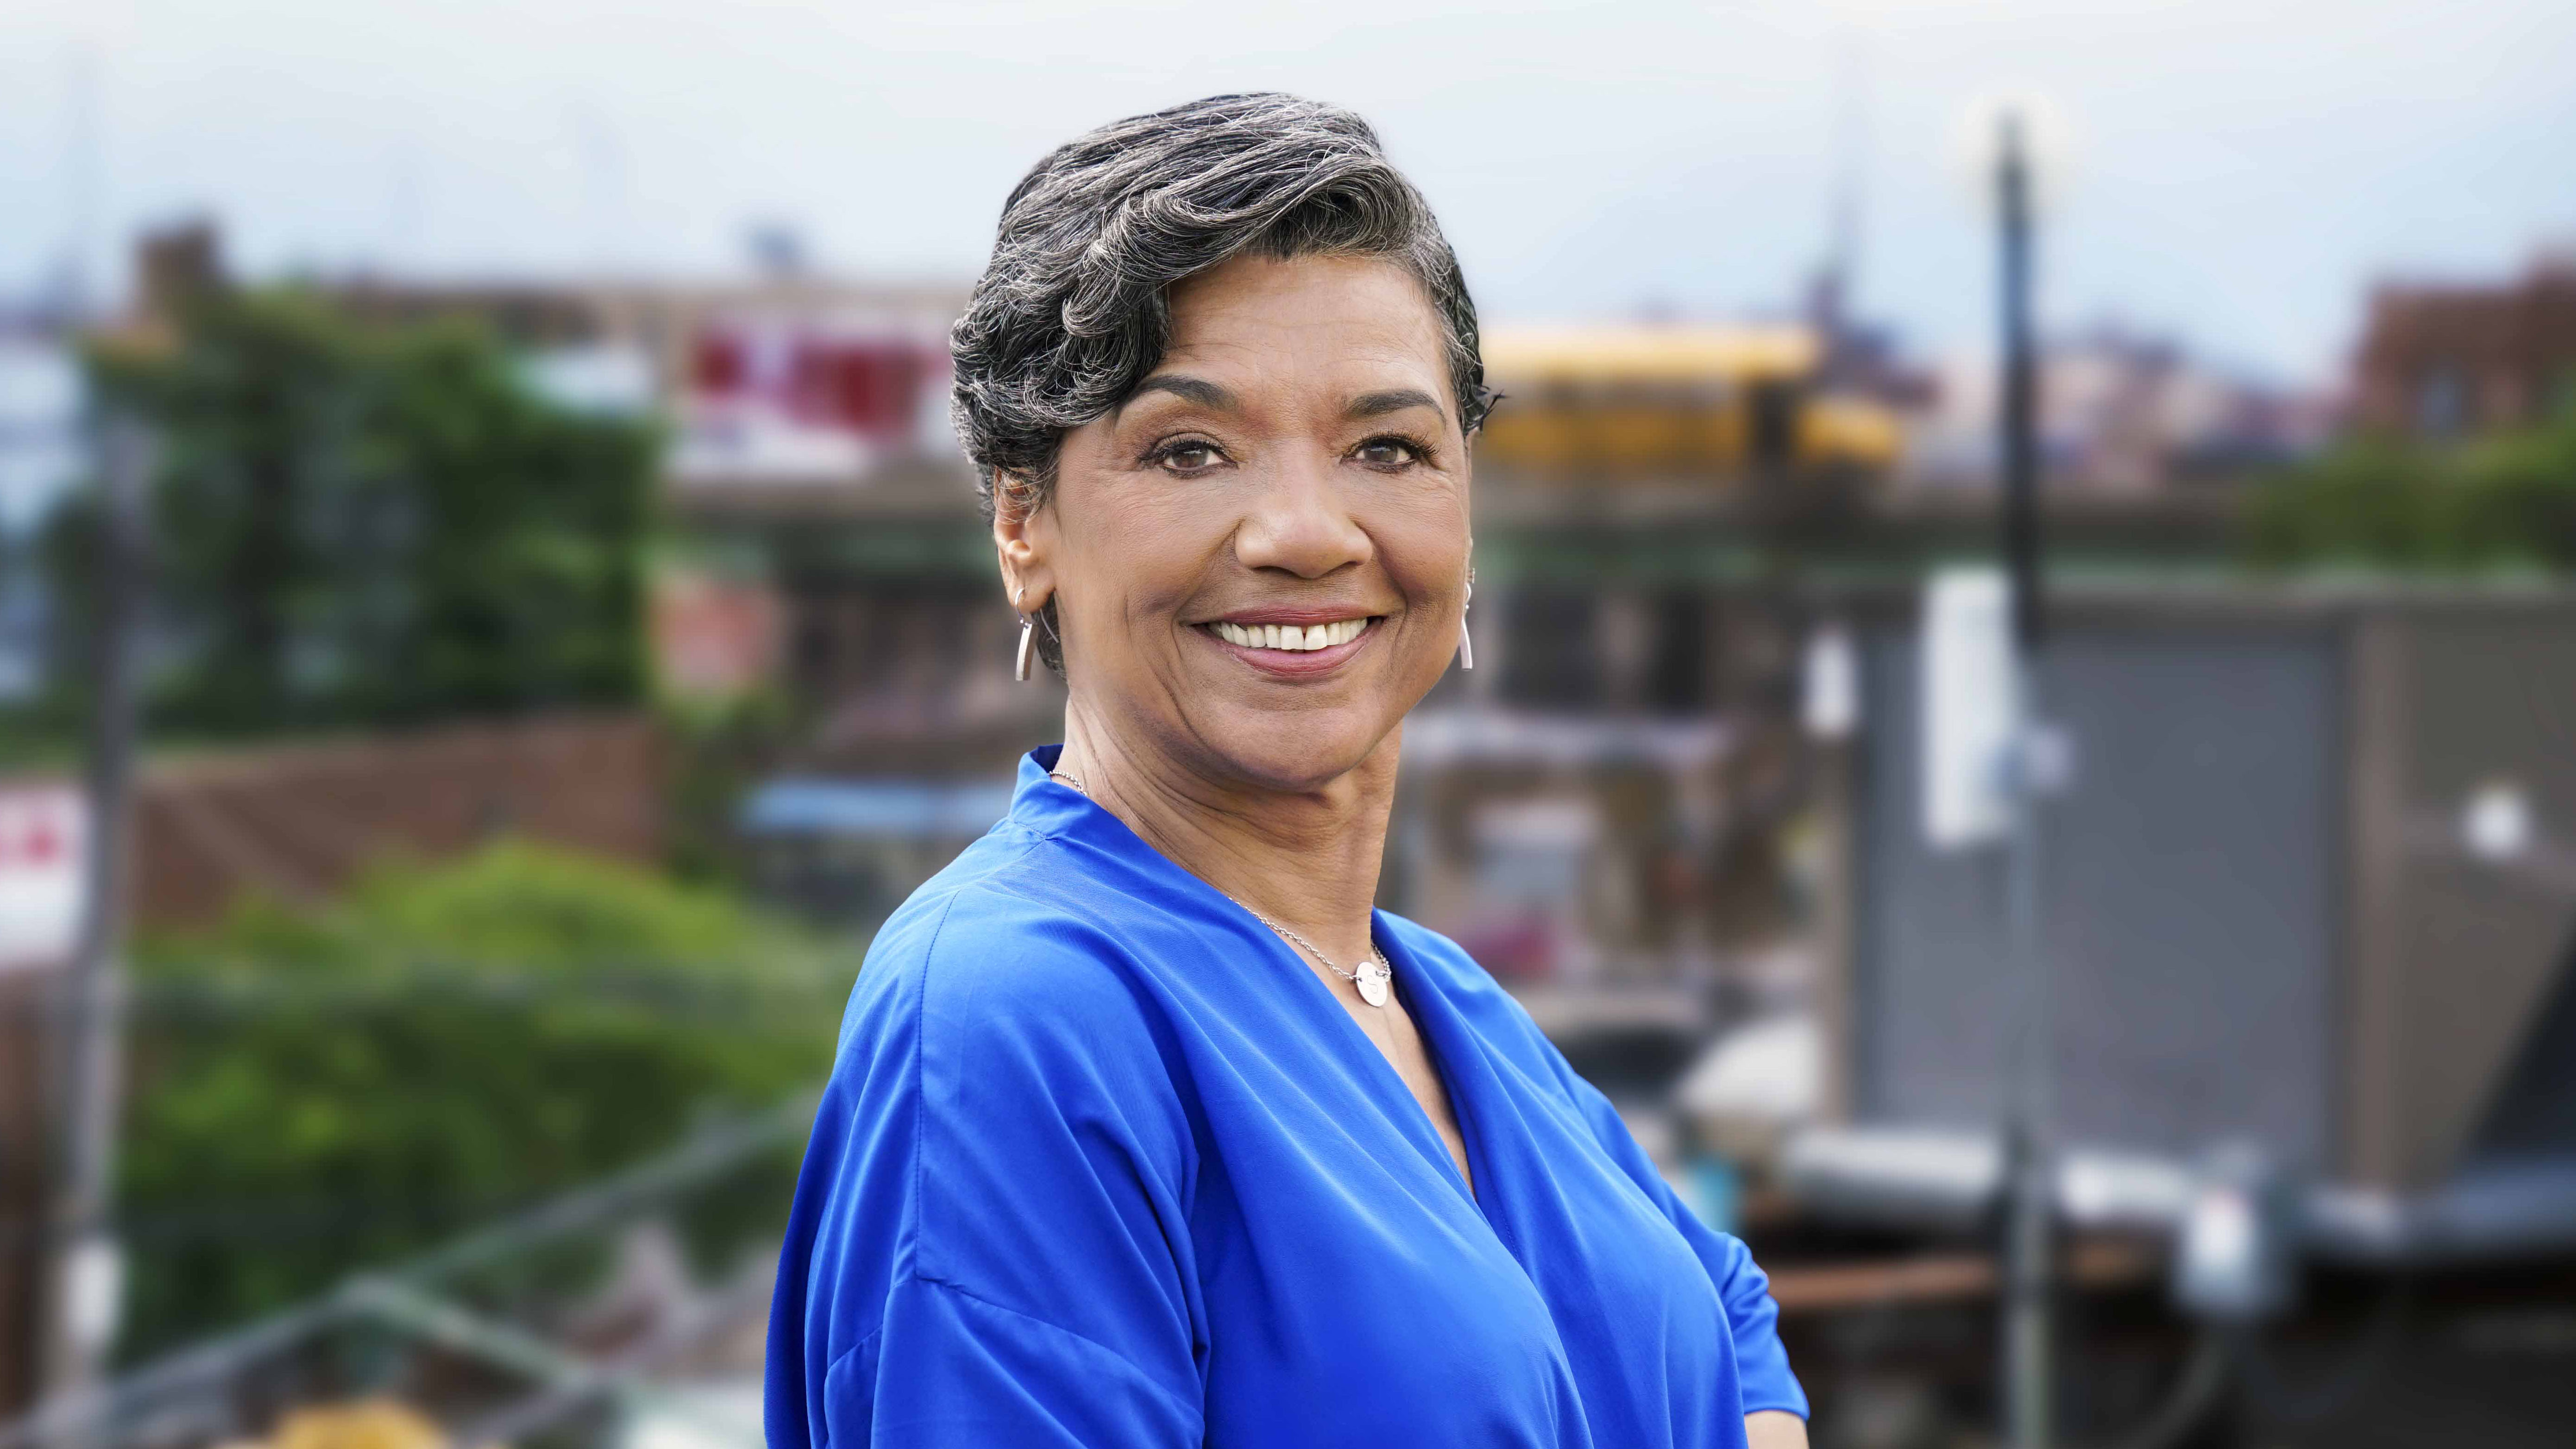 """Sonia Manzano has created her own neighborhood to play and learn in, with the new animated series """"Alma's Way""""."""